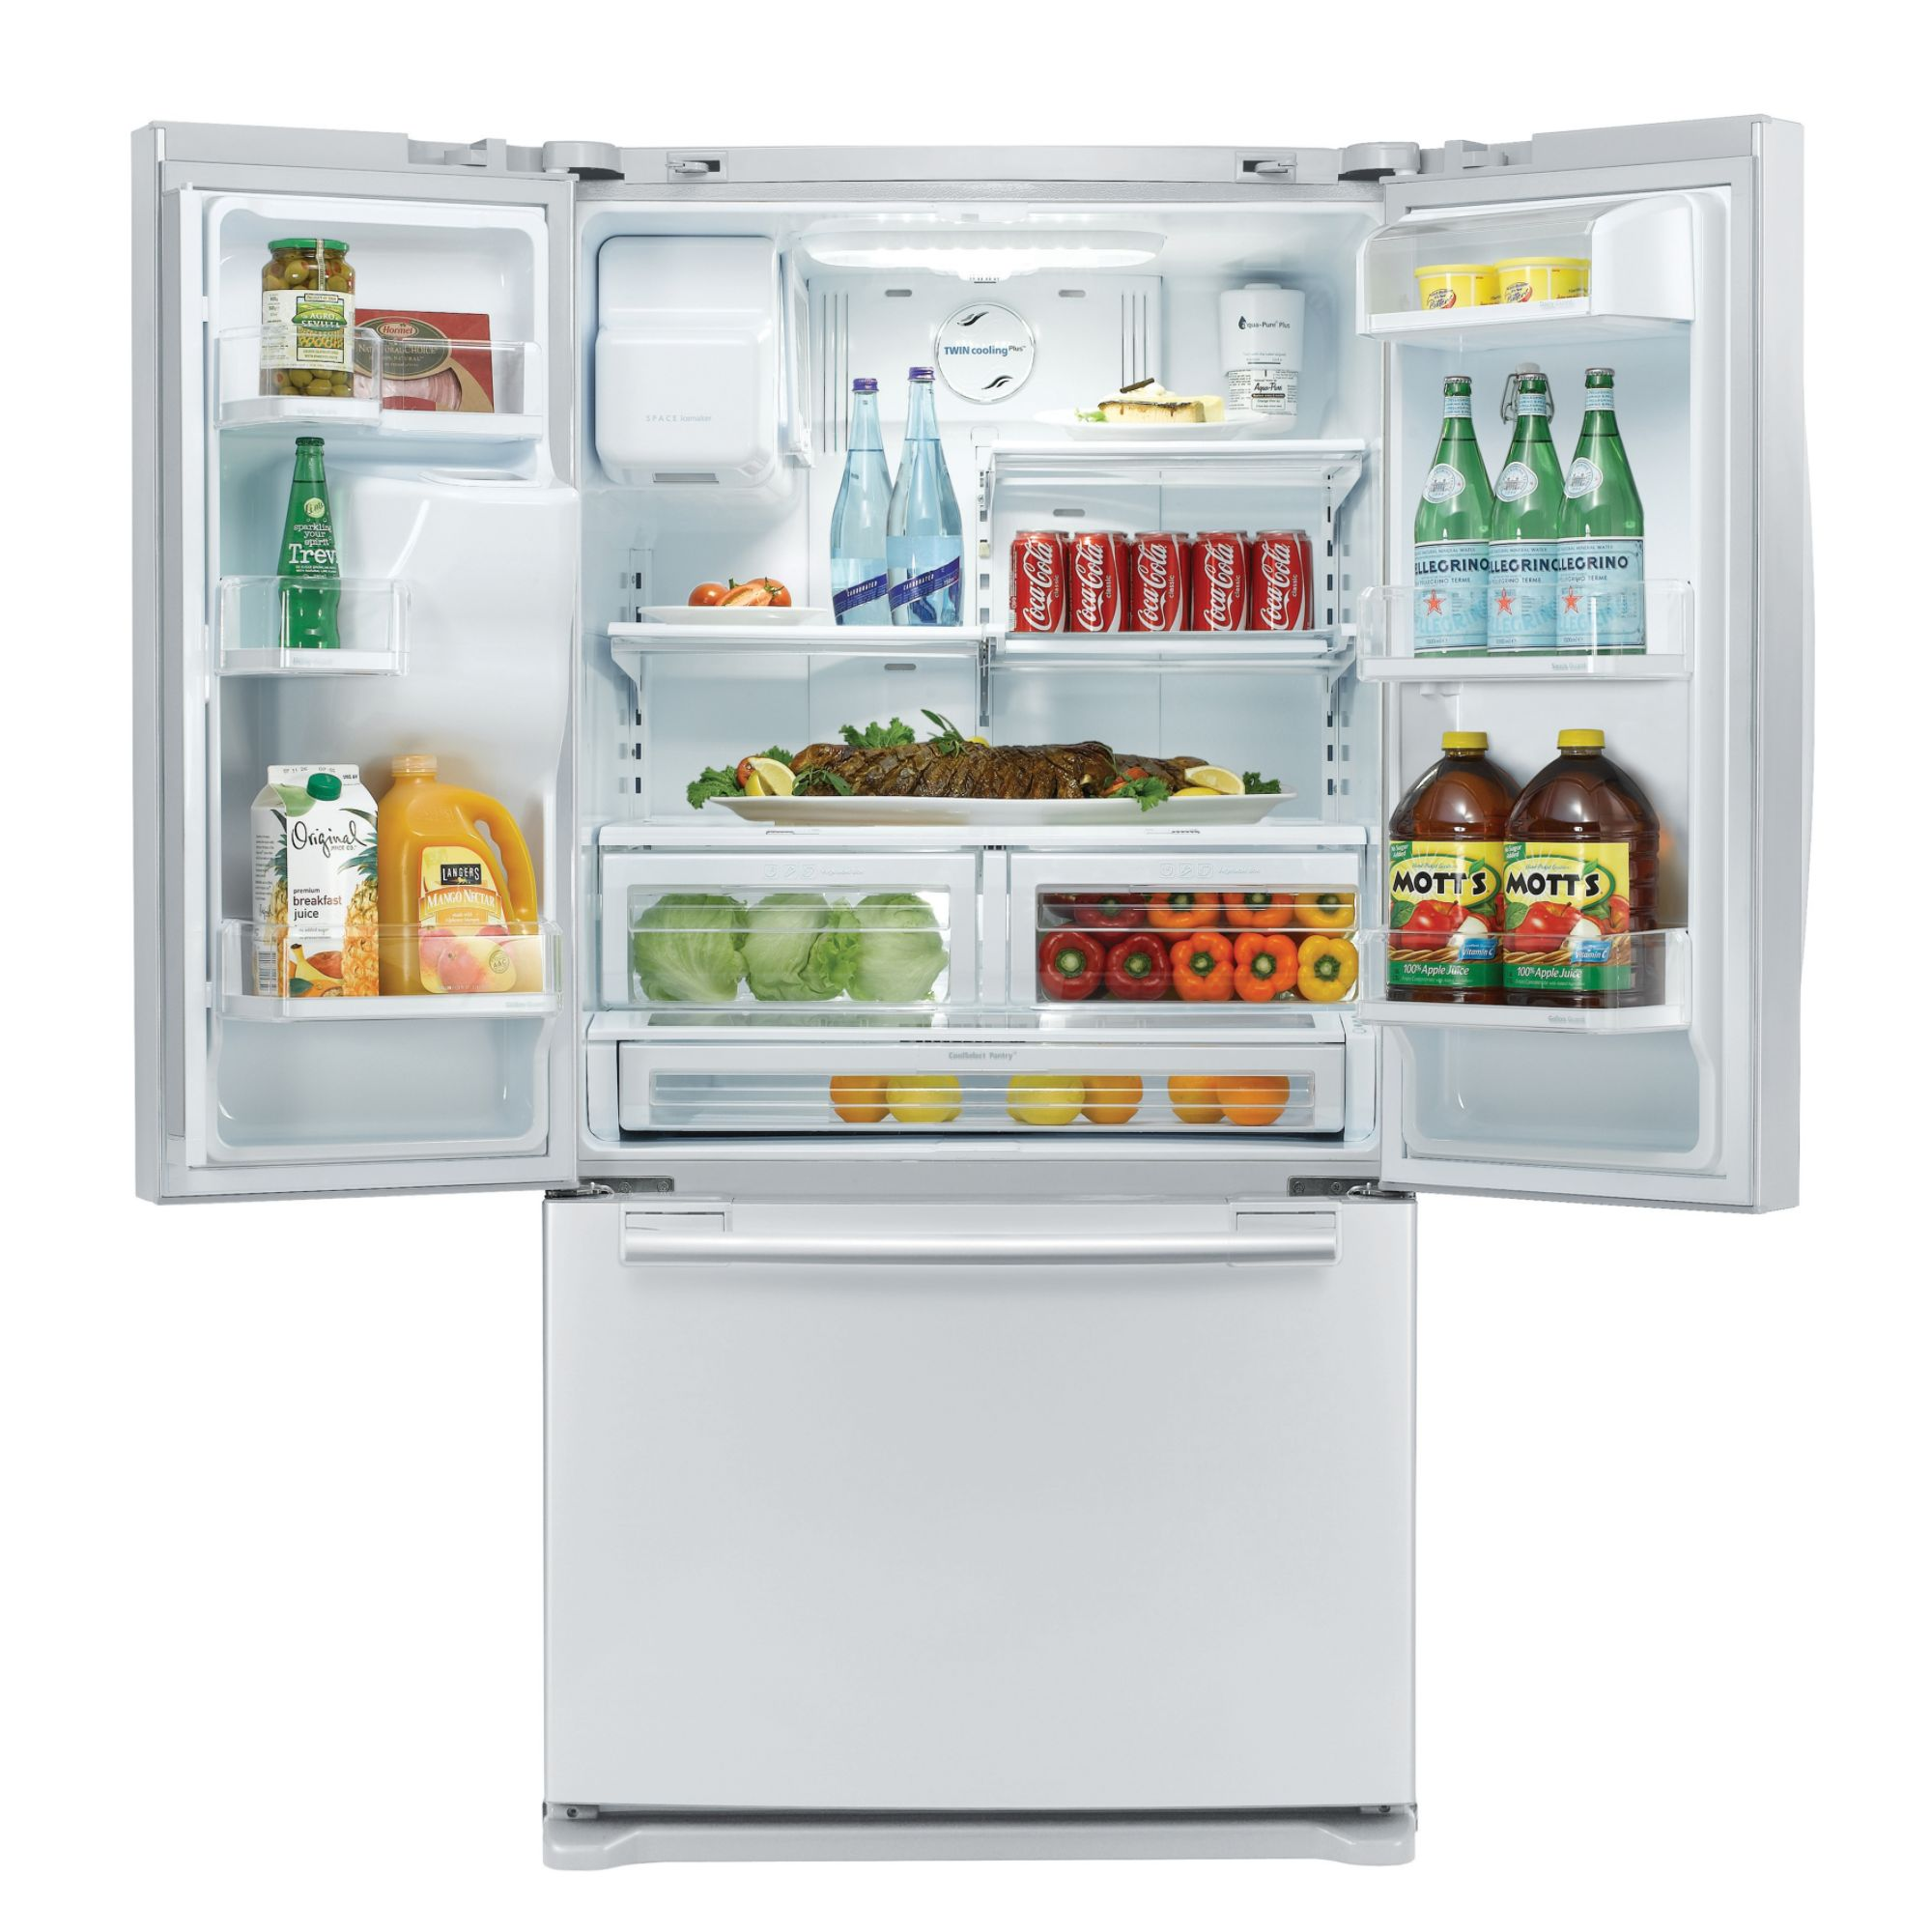 Samsung 23.0 cu. ft. Counter-Depth French-Door Refrigerator